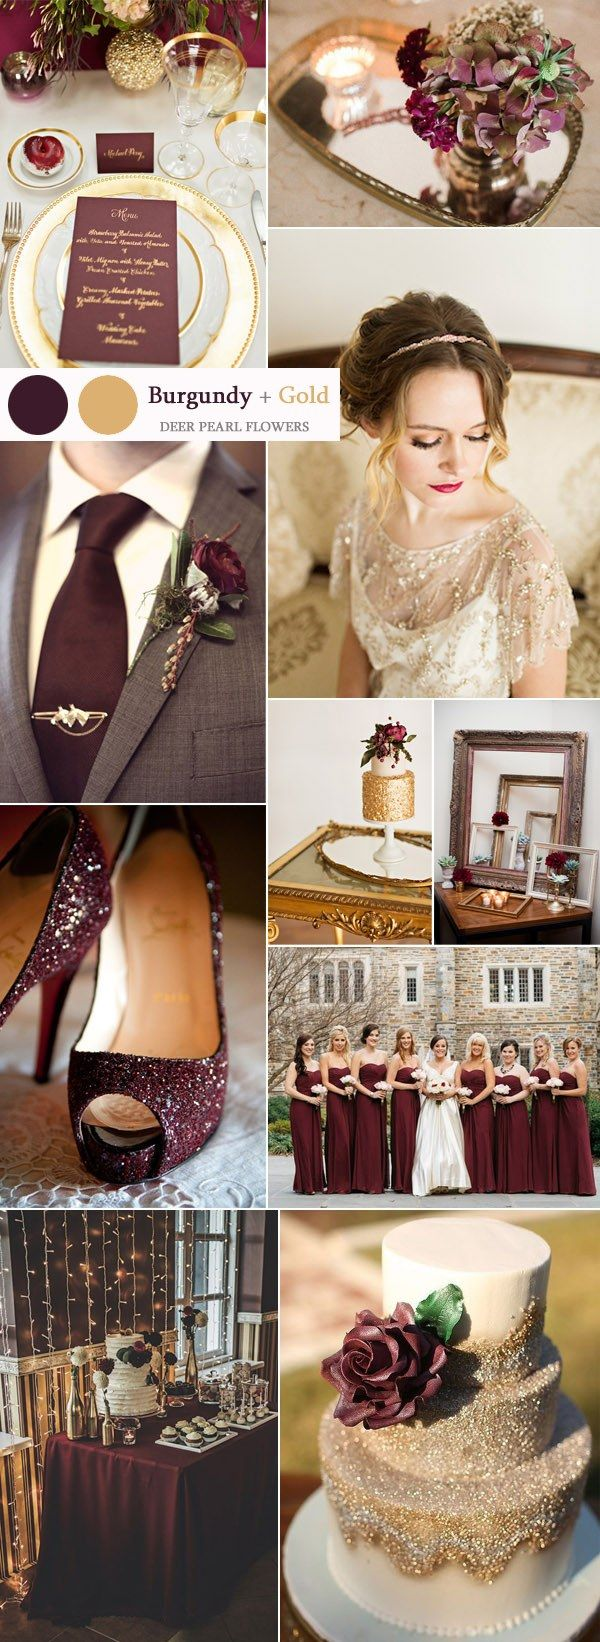 vintage burgundy and gold wedding ideas